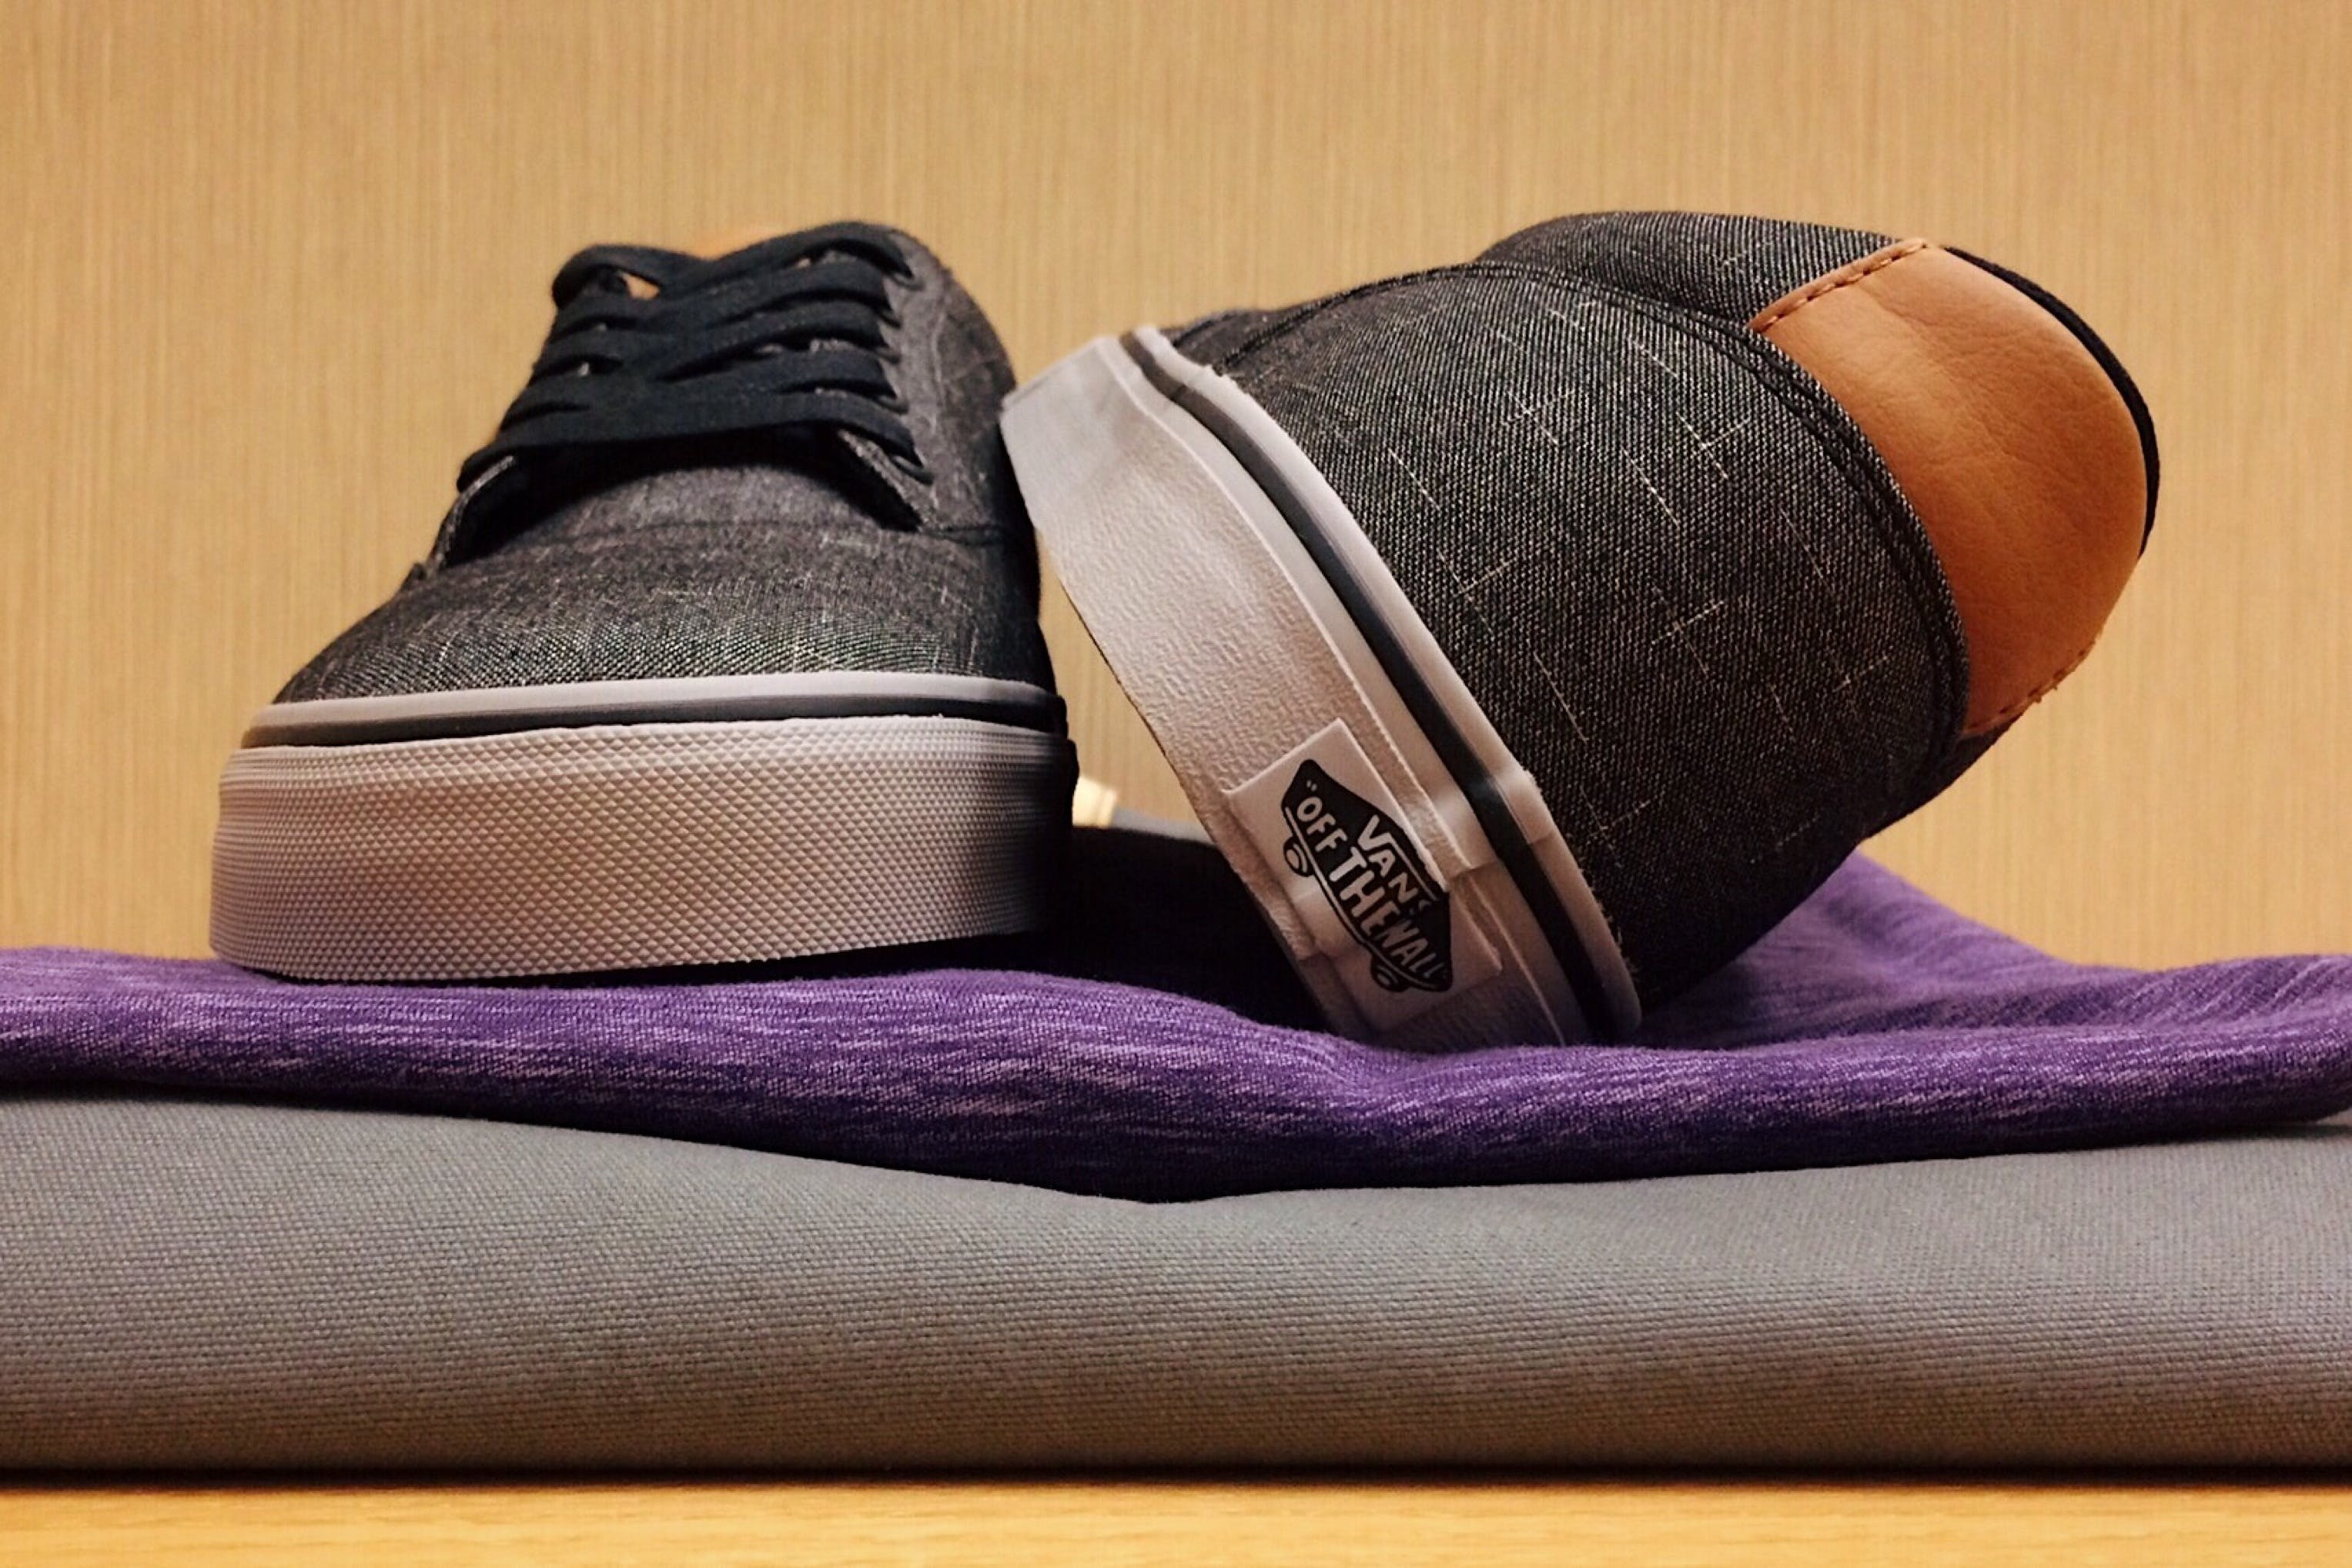 Pair of Gray-and-white Vans Low-top Sneakers